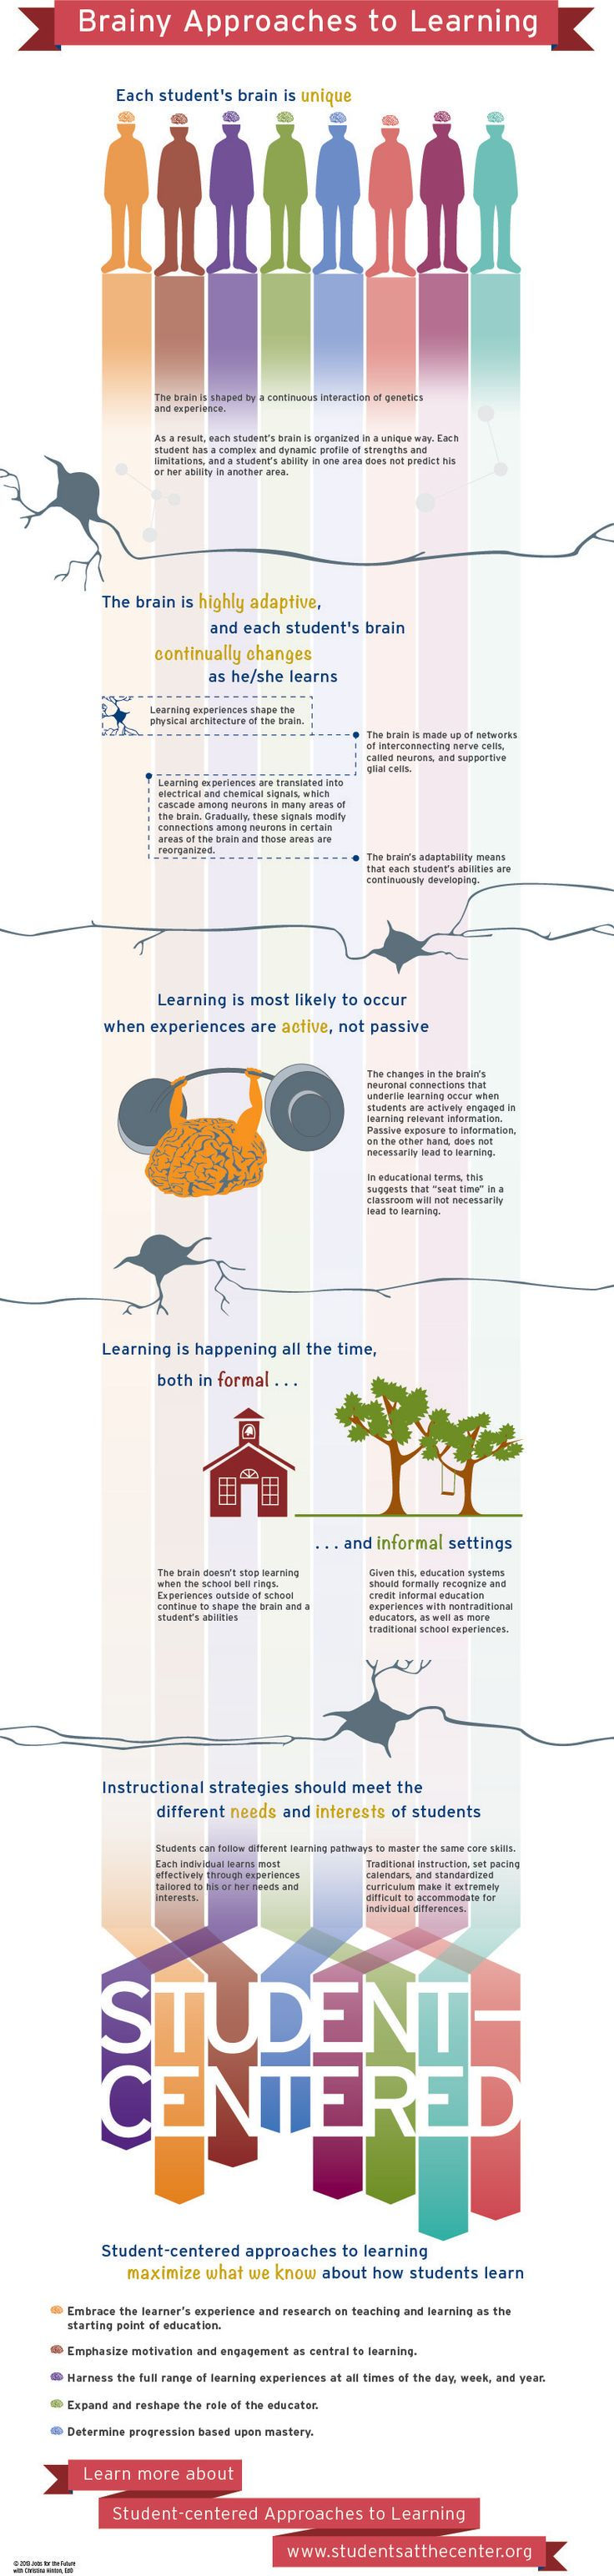 Brainy Approaches to #Learning